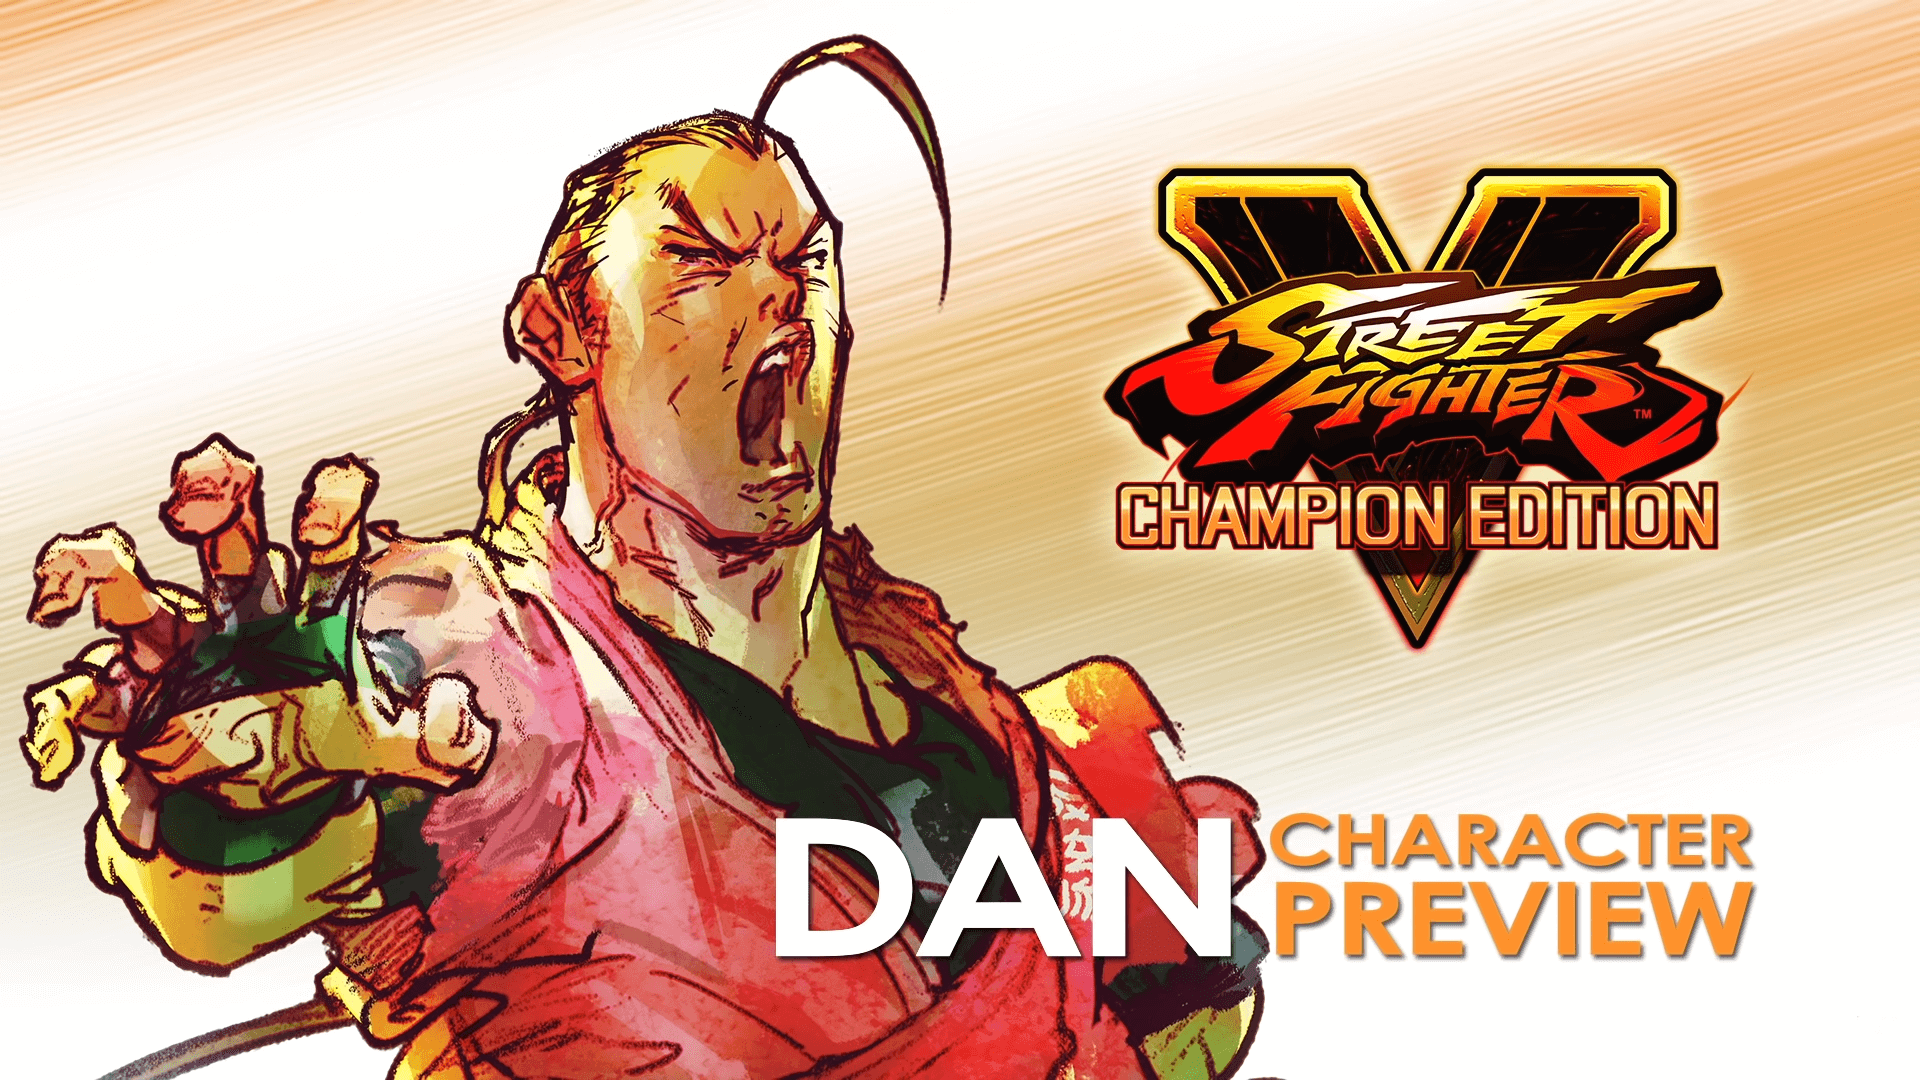 Dan Joins the Street Fighter 5 roster on February 2021